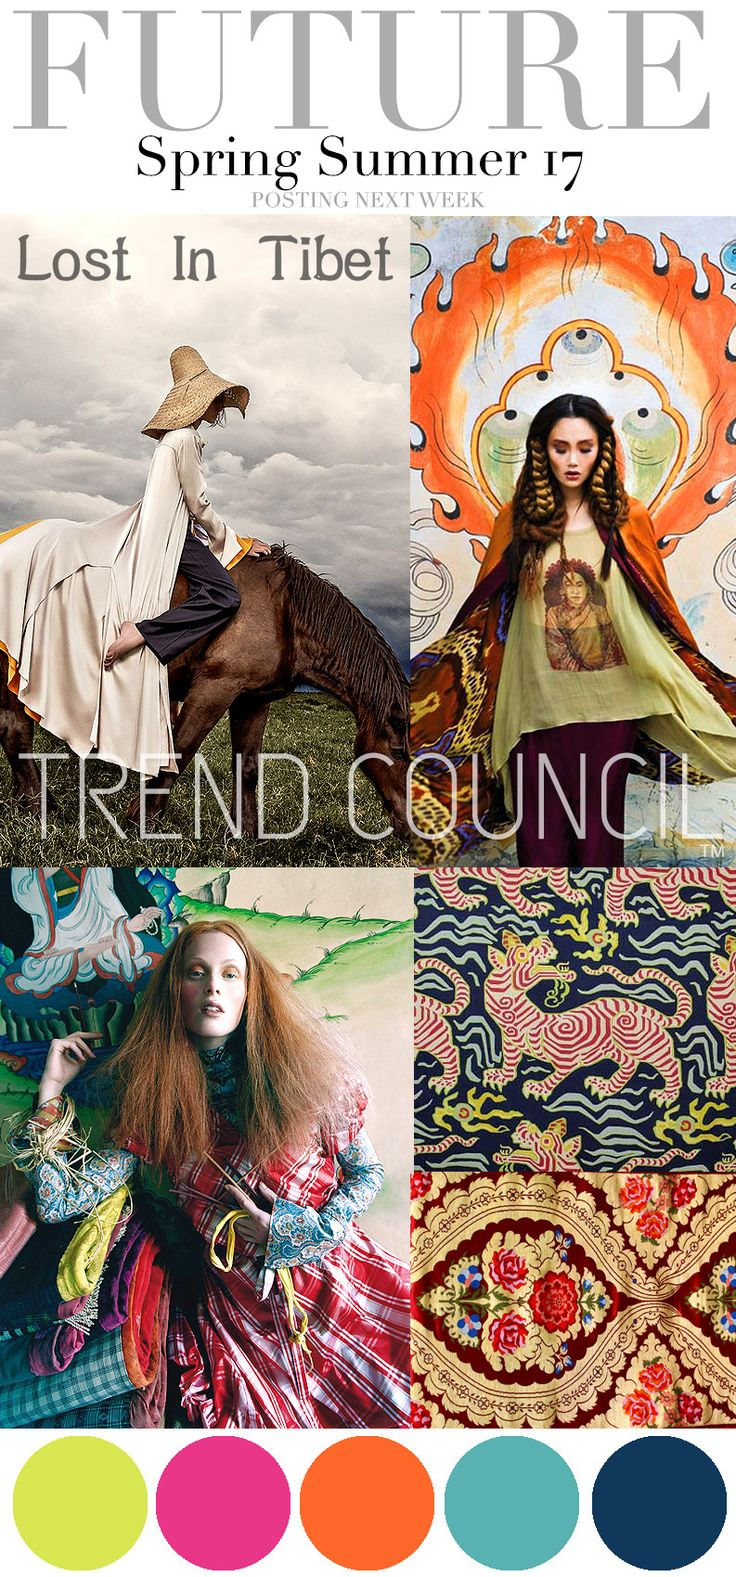 TREND COUNCIL SS 2017- LOST IN TIBET